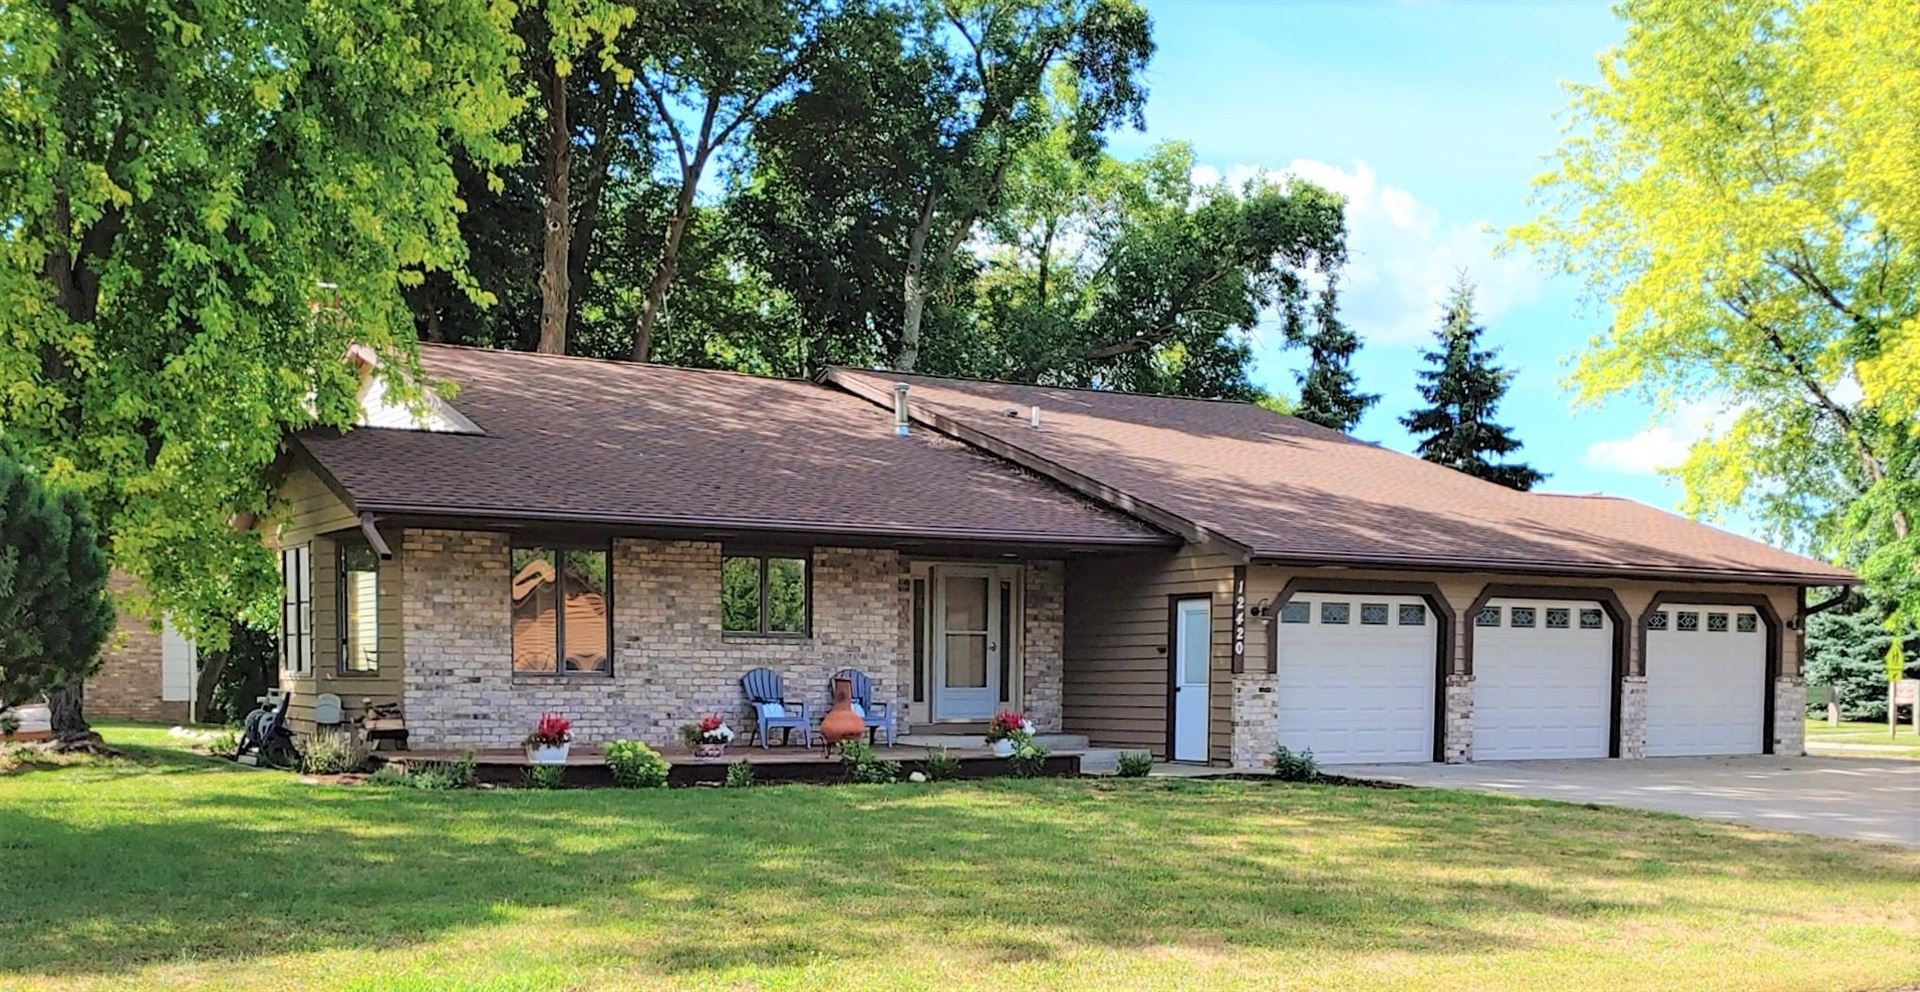 12420 66th Place N, Maple Grove, MN 55369 - MLS#: 5630213